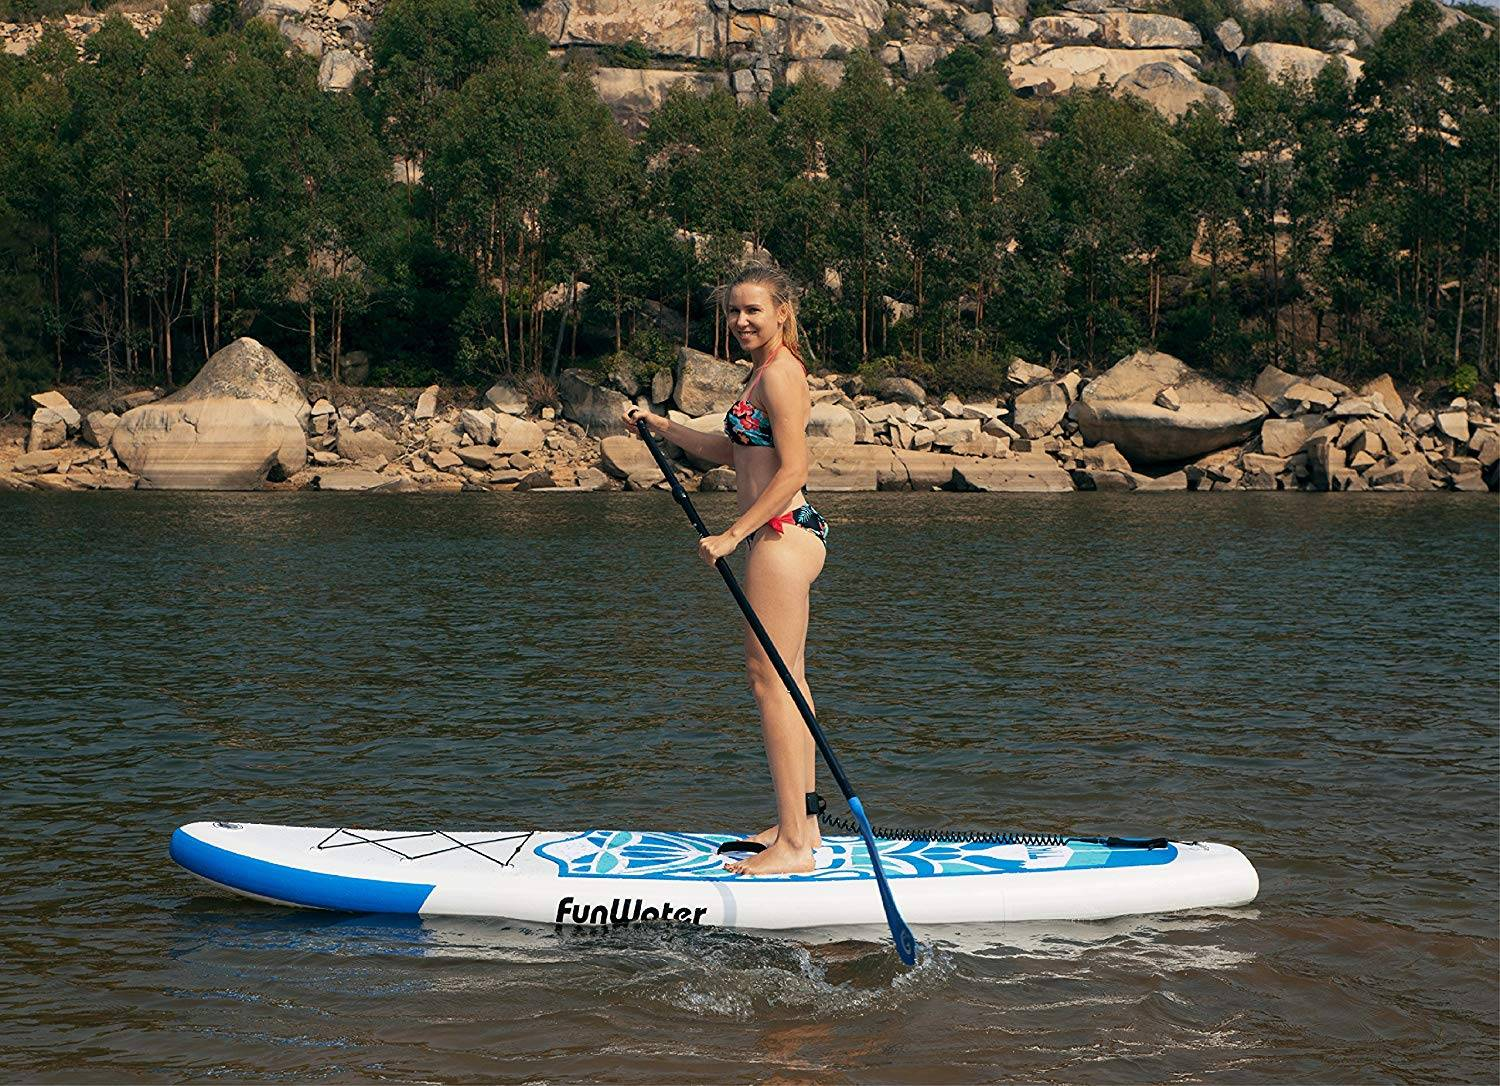 Funwater Paddle board - image Funwater-Paddle-board on https://supboardgear.com